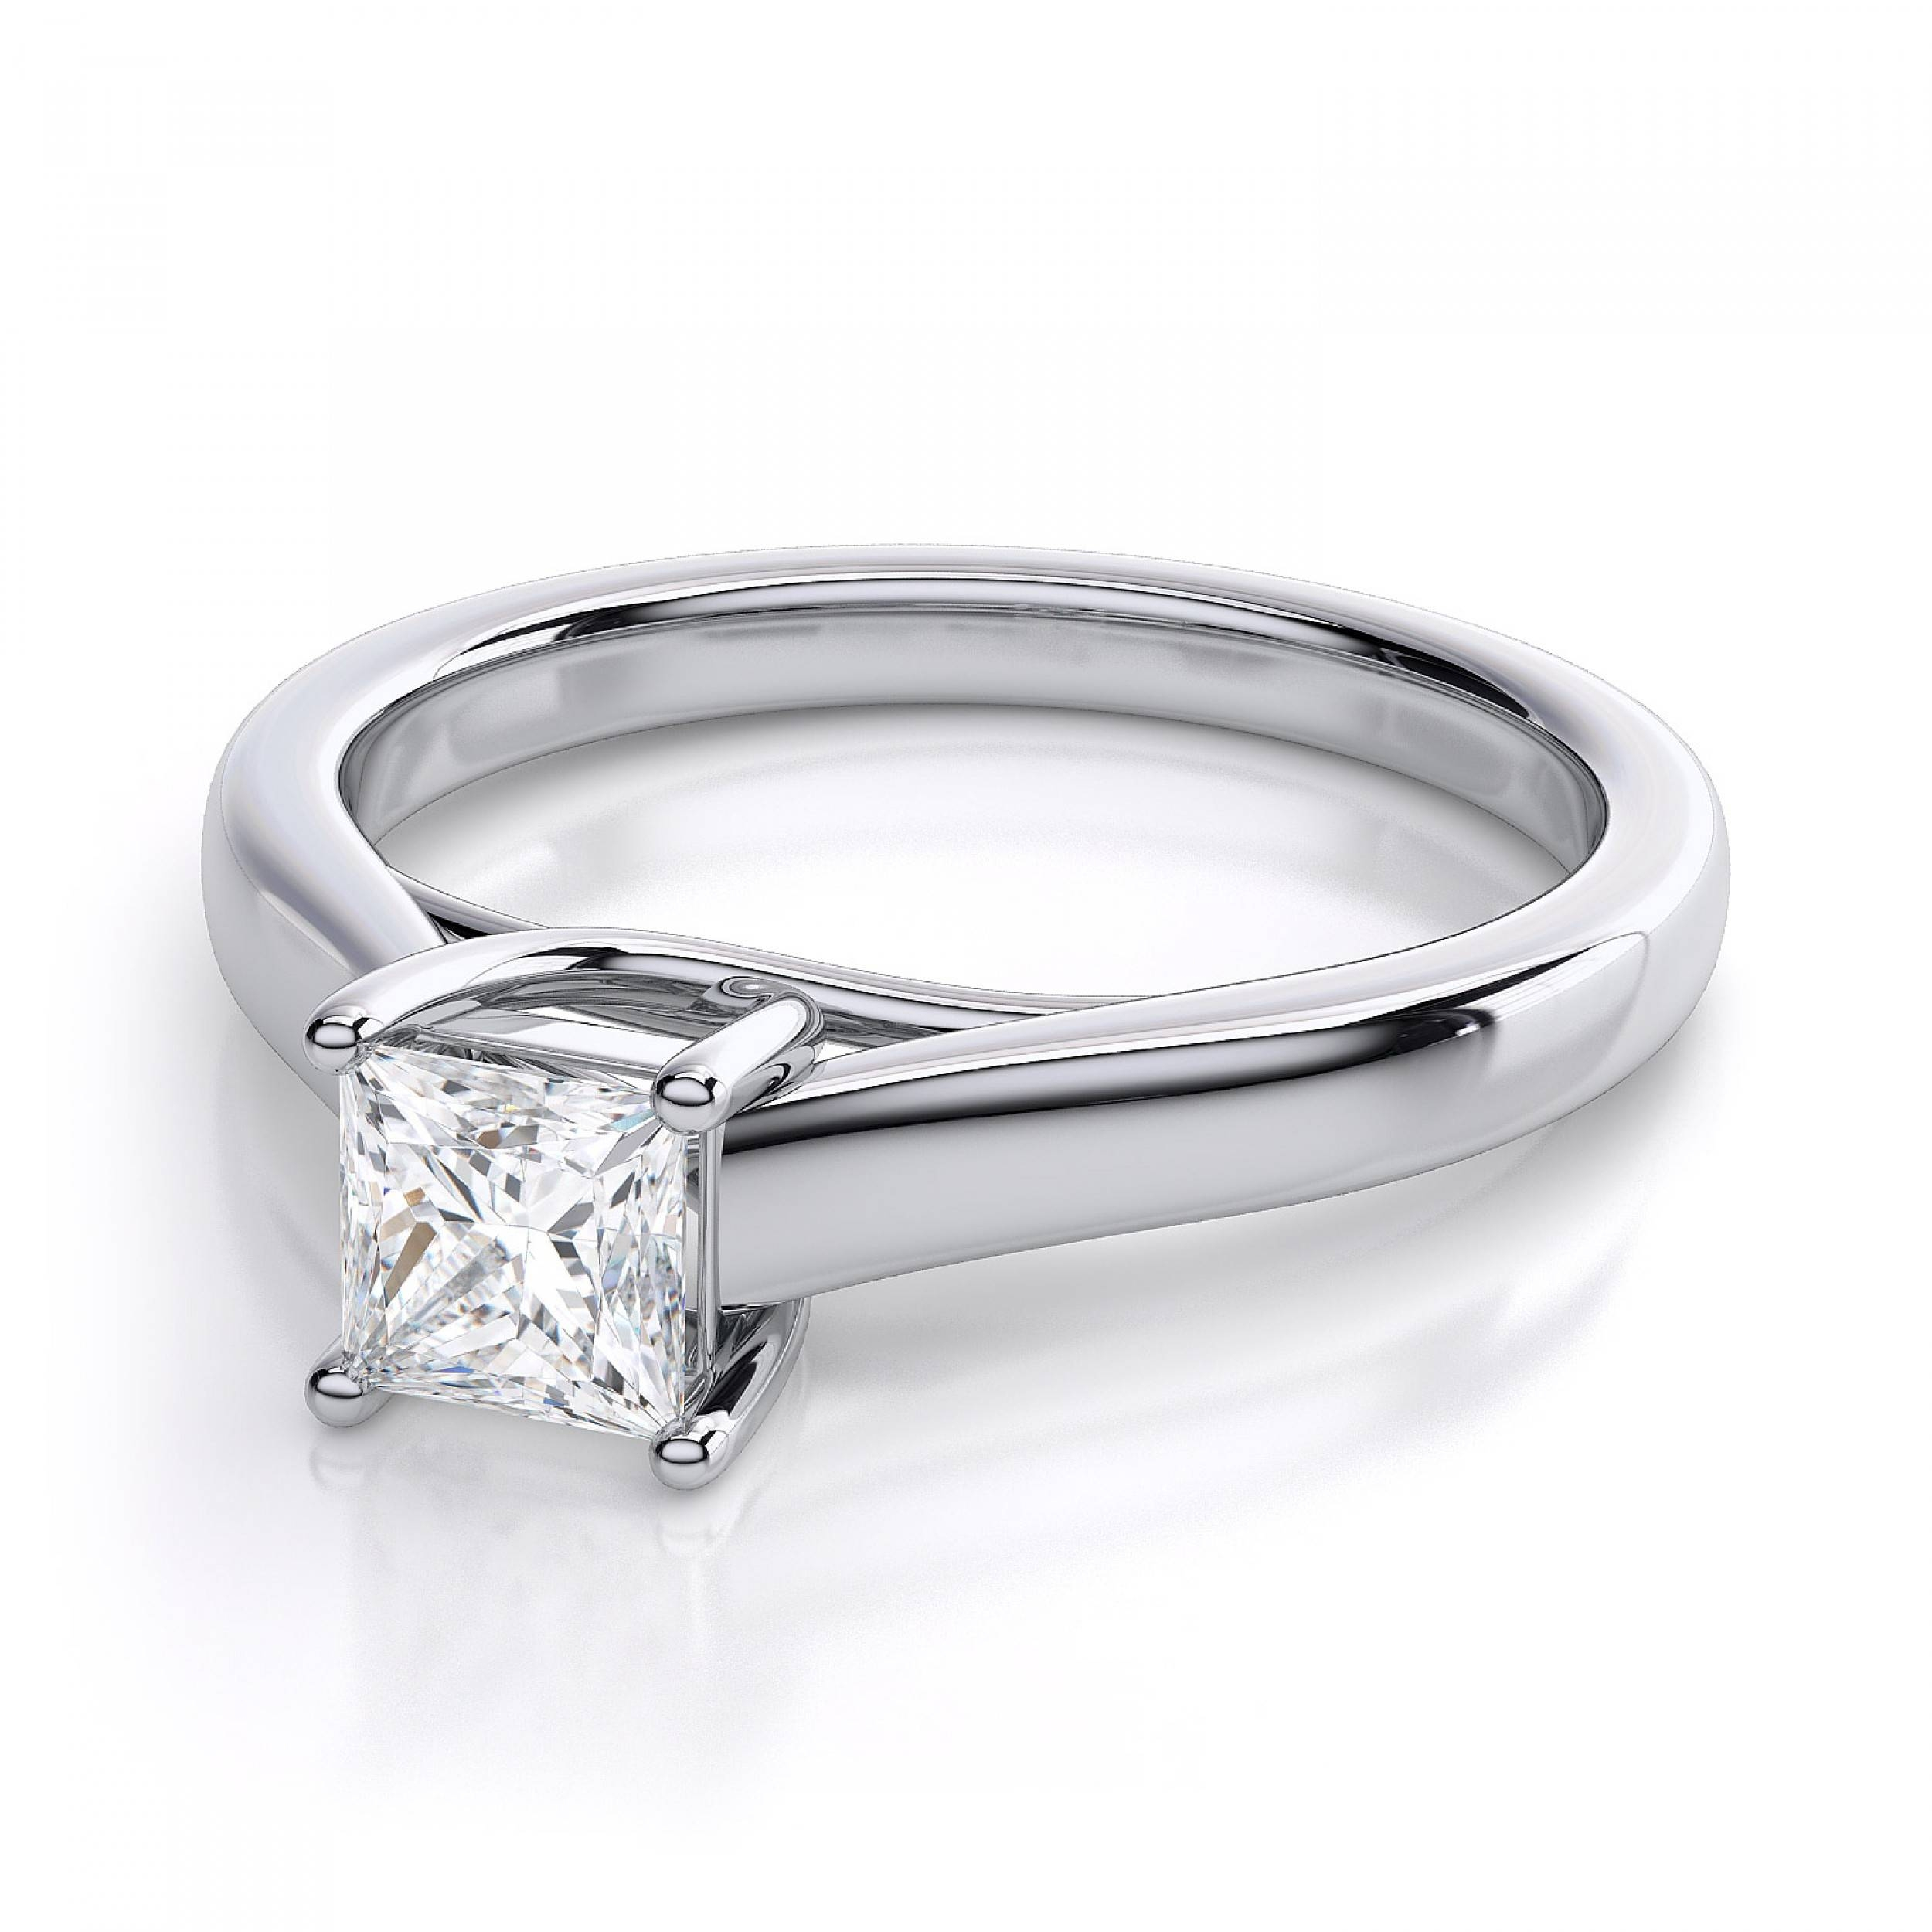 Princess Cut Trellis Solitaire Diamond Engagement Ring In Platinum Intended For Princess Cut Diamond Engagement Rings (Gallery 13 of 15)